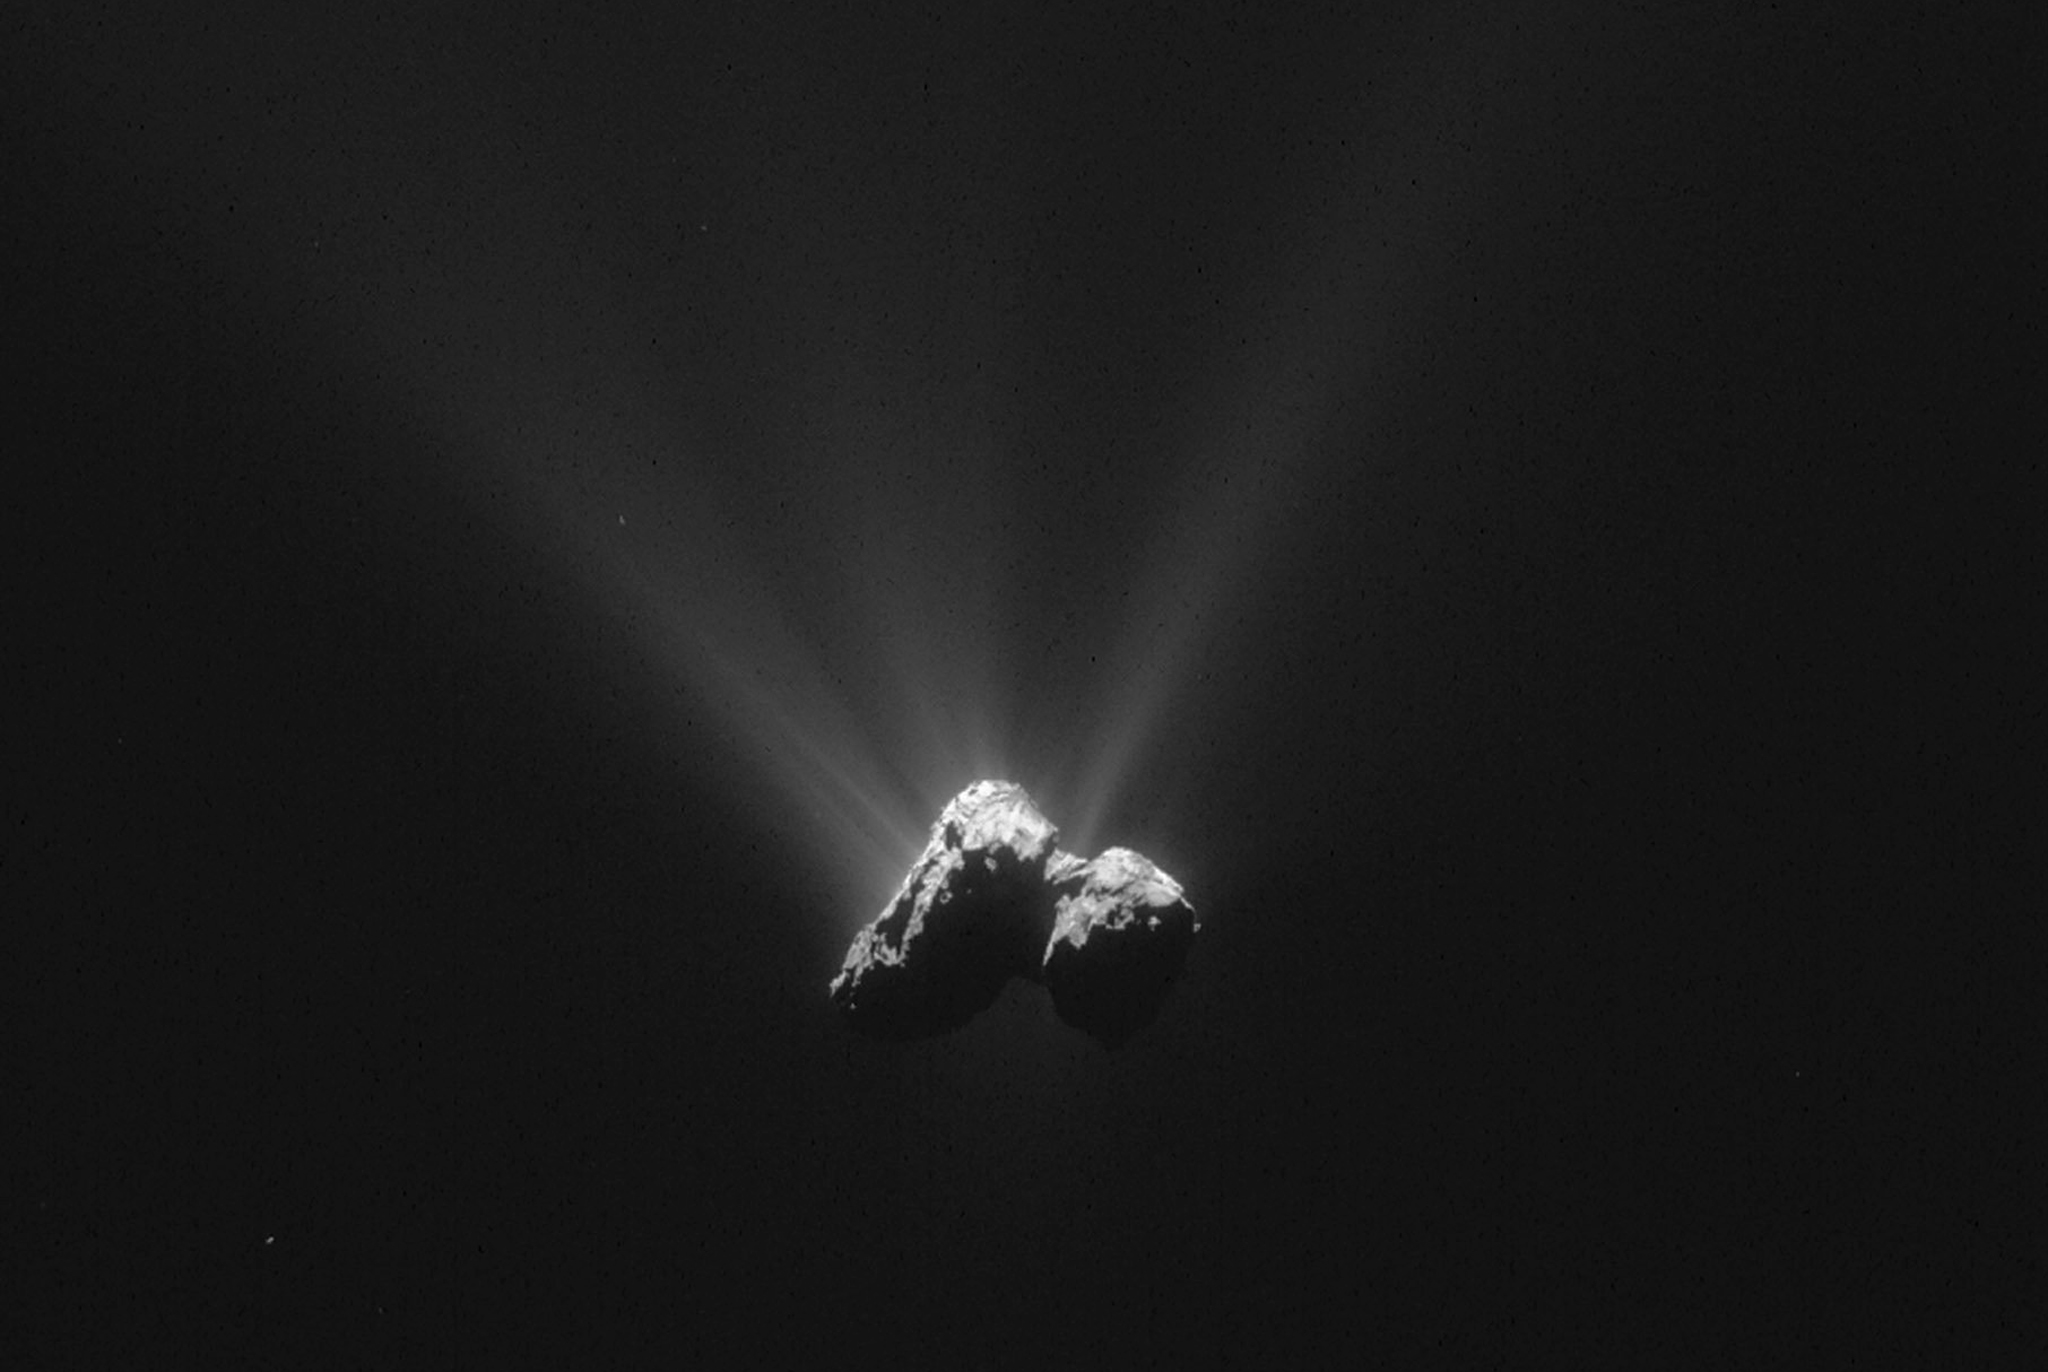 Embargoed to 1900 Friday May 27  European Space Agency handout image of Comet 67P/Churyumov-Gerasimenko, taken by the Rosetta orbiter in August 2015 when the object was at its closest point to the sun. Rosetta found evidence of basic building blocks of life in gases surrounding the comet. PRESS ASSOCIATION Photo. Issue date: Friday May 27, 2016. See PA story SCIENCE Rosetta. Photo credit should read: ESA/Rosetta/Navcam/PA Wire  NOTE TO EDITORS: This handout photo may only be used in for editorial reporting purposes for the contemporaneous illustration of events, things or the people in the image or facts mentioned in the caption. Reuse of the picture may require further permission from the copyright holder.